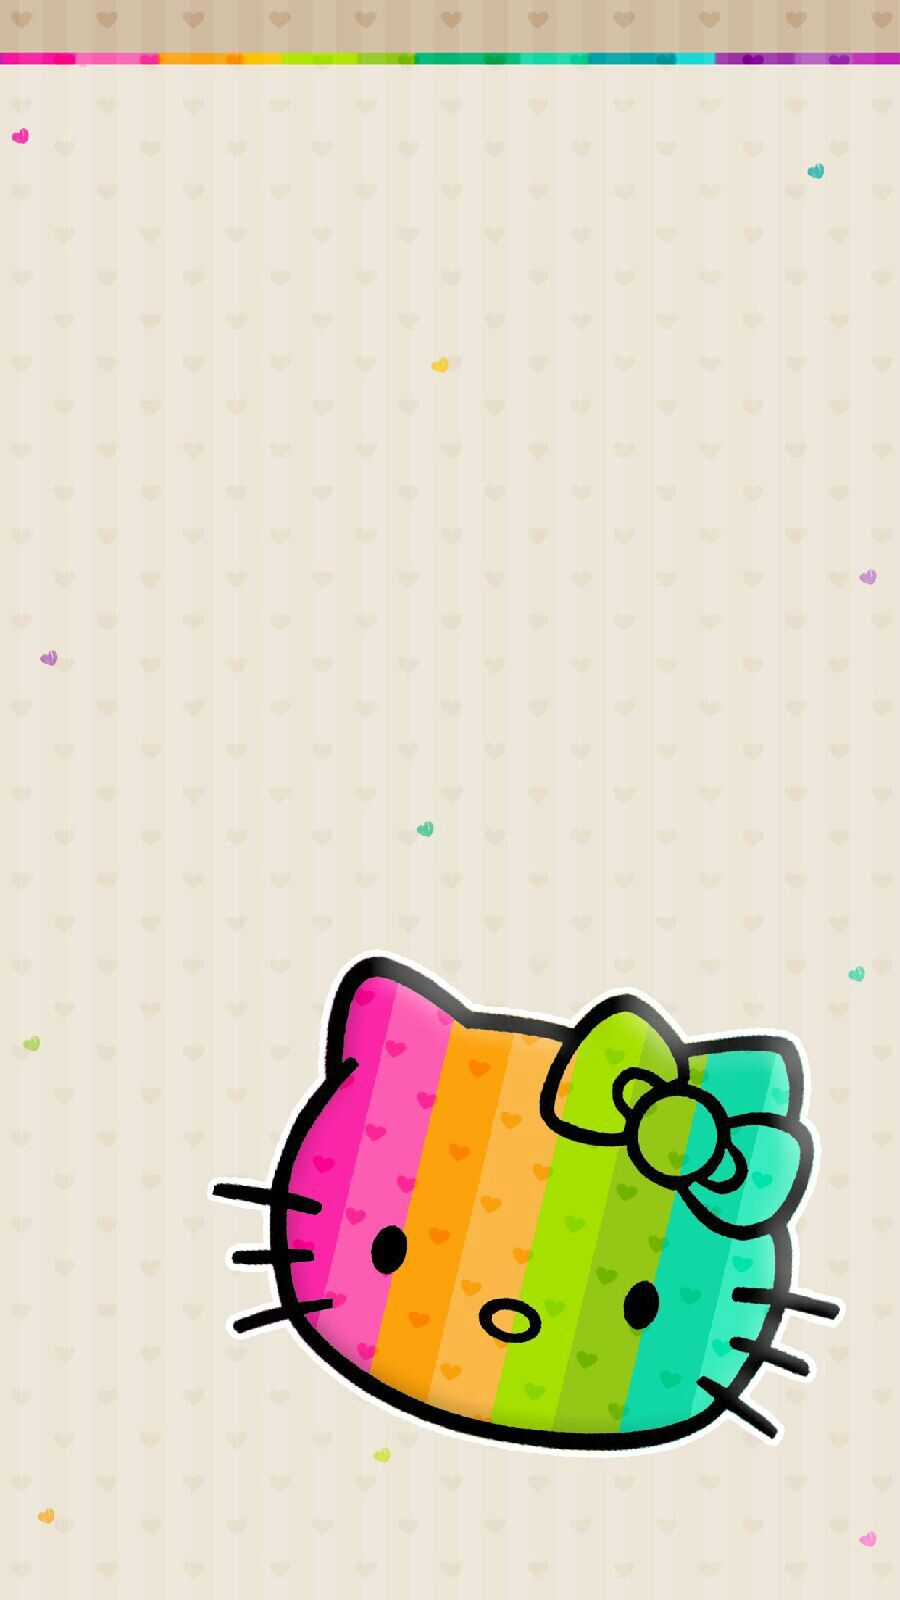 Must see Wallpaper Hello Kitty Android - 25c60eefa1742d777cbbbe41f36b686a  Snapshot_792966.jpg